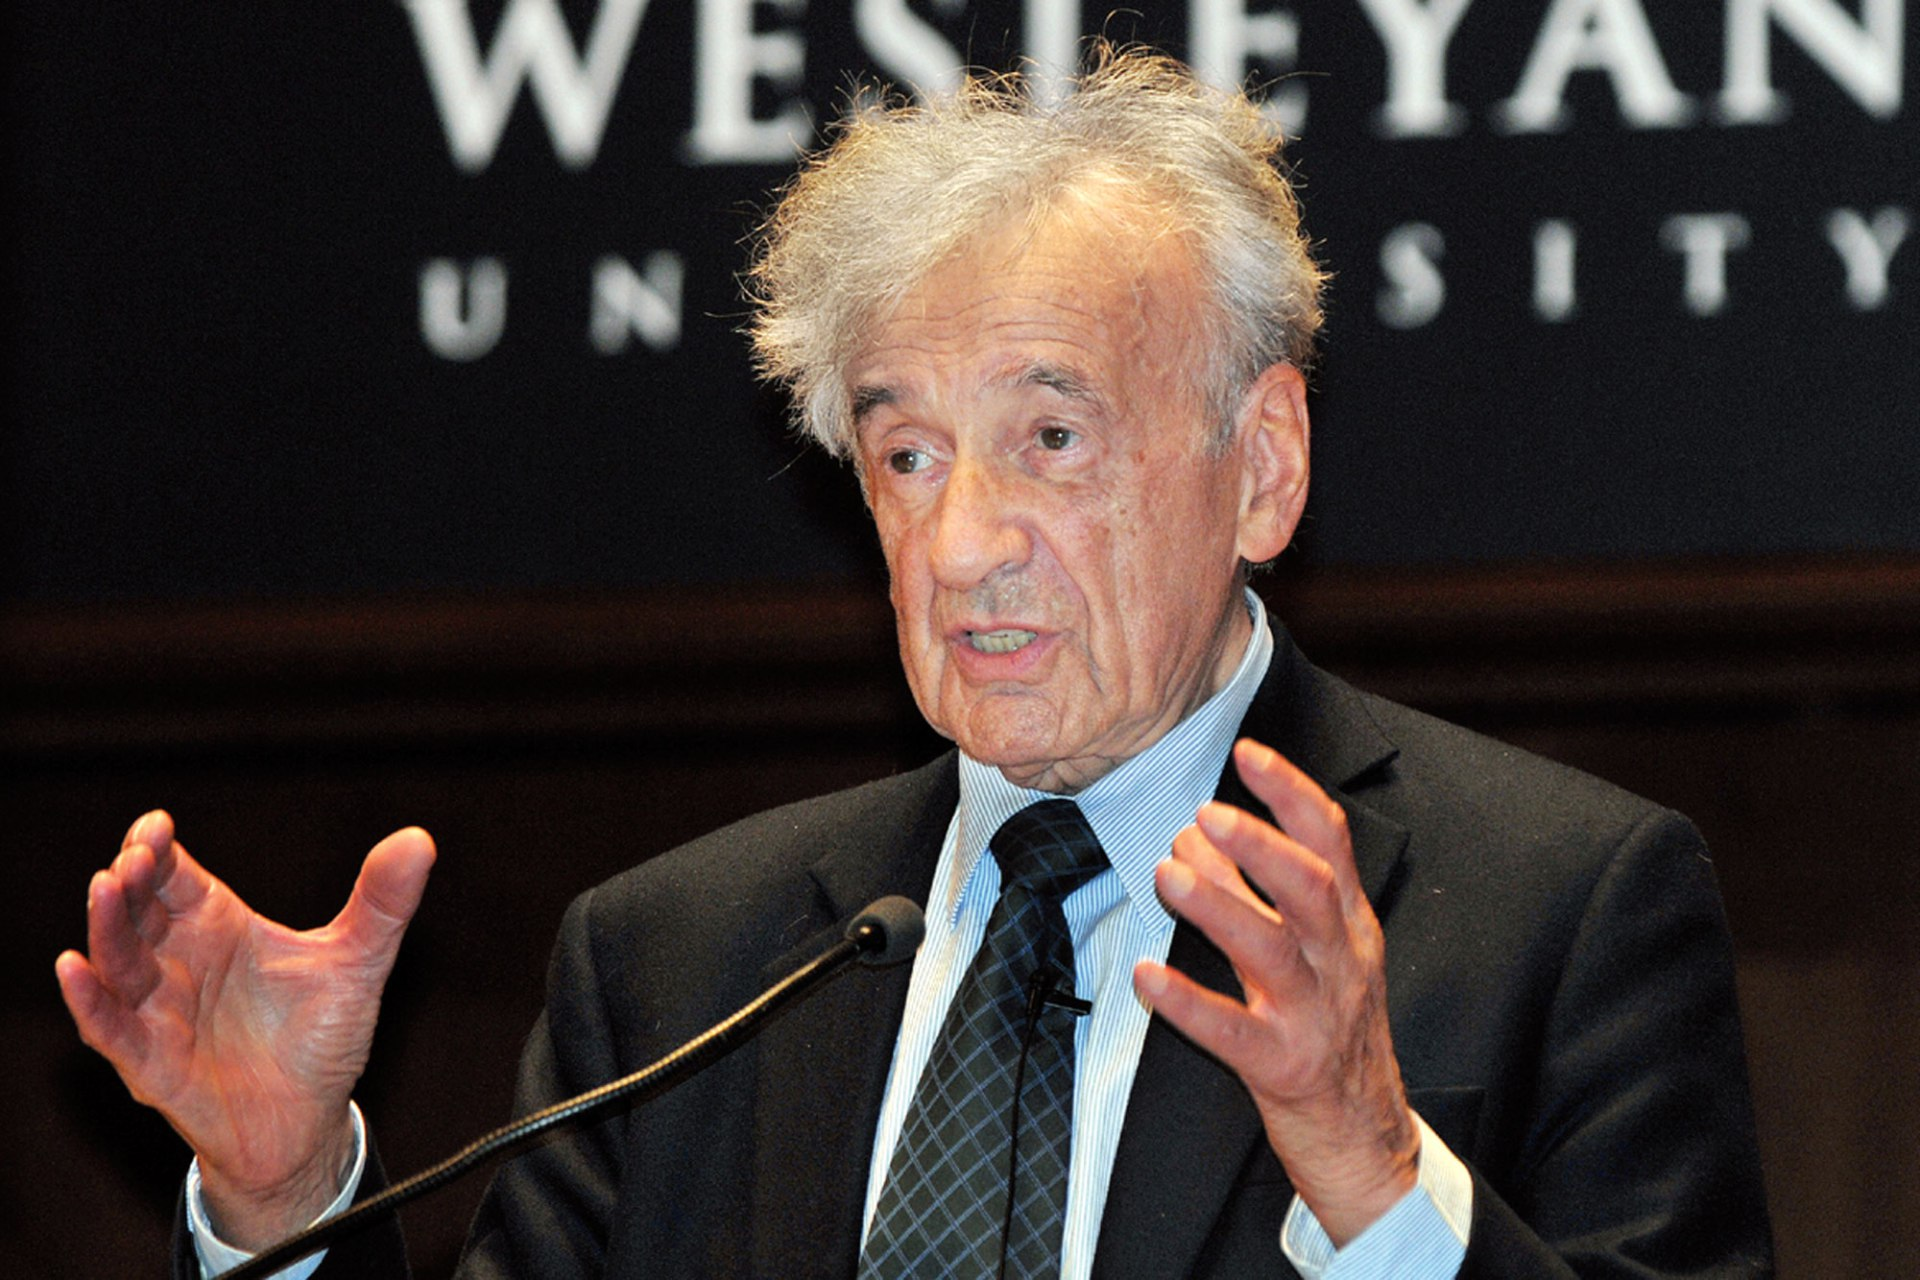 dehuminization found in ellie wiesels night Night is the story of elie wiesel surviving nazi concentration camps as a teenager the original yiddish publication of night was 900 pages and titled and the world.